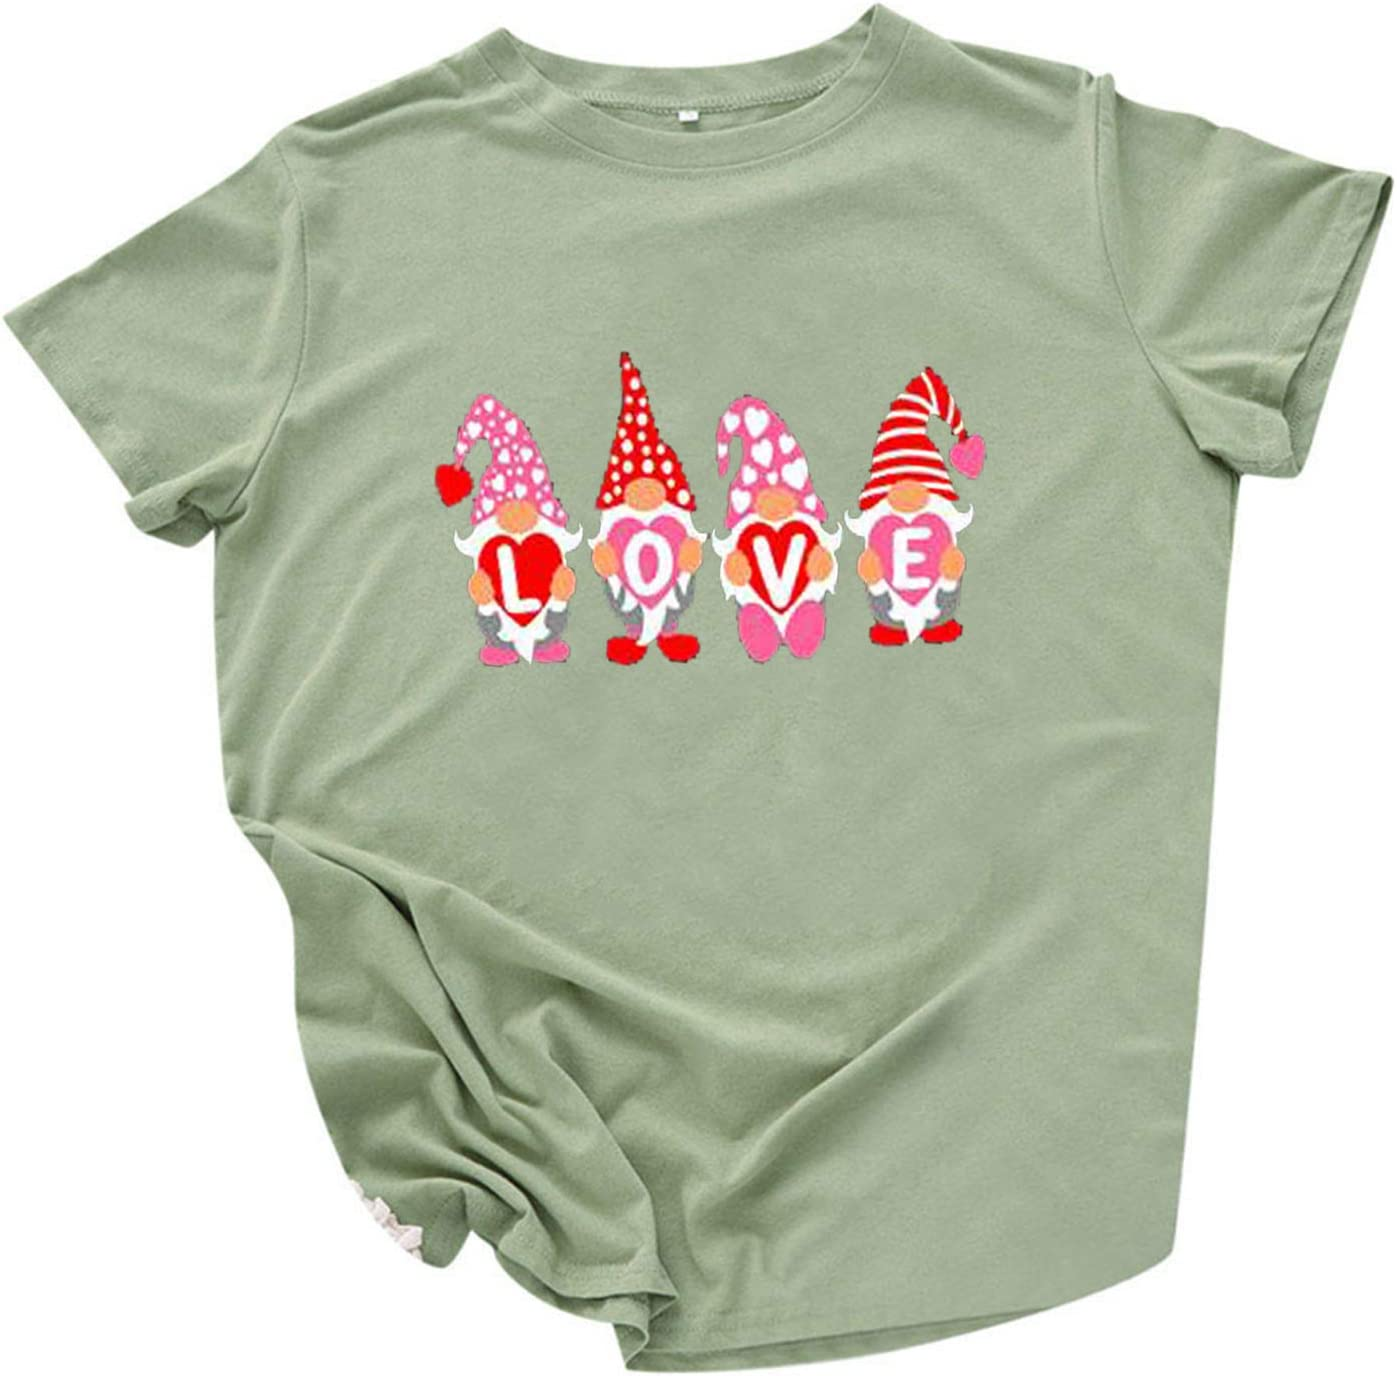 Womens Valentines Day Shirt Dressy Gnome Cute All items free shipping Tulsa Mall Love Print Letter